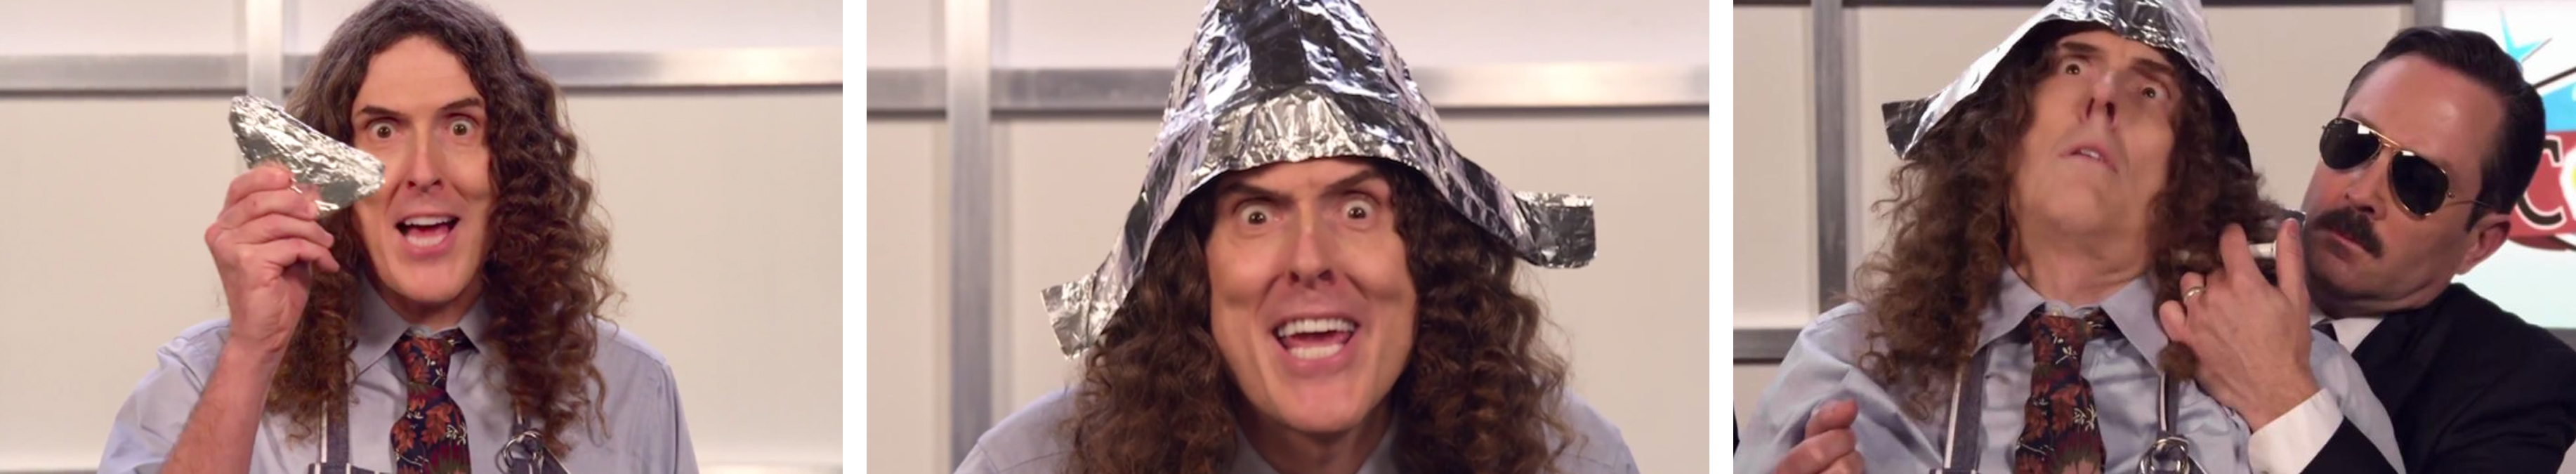 Weird Al Yankovik's tin foil hat video. Conspiracy theory